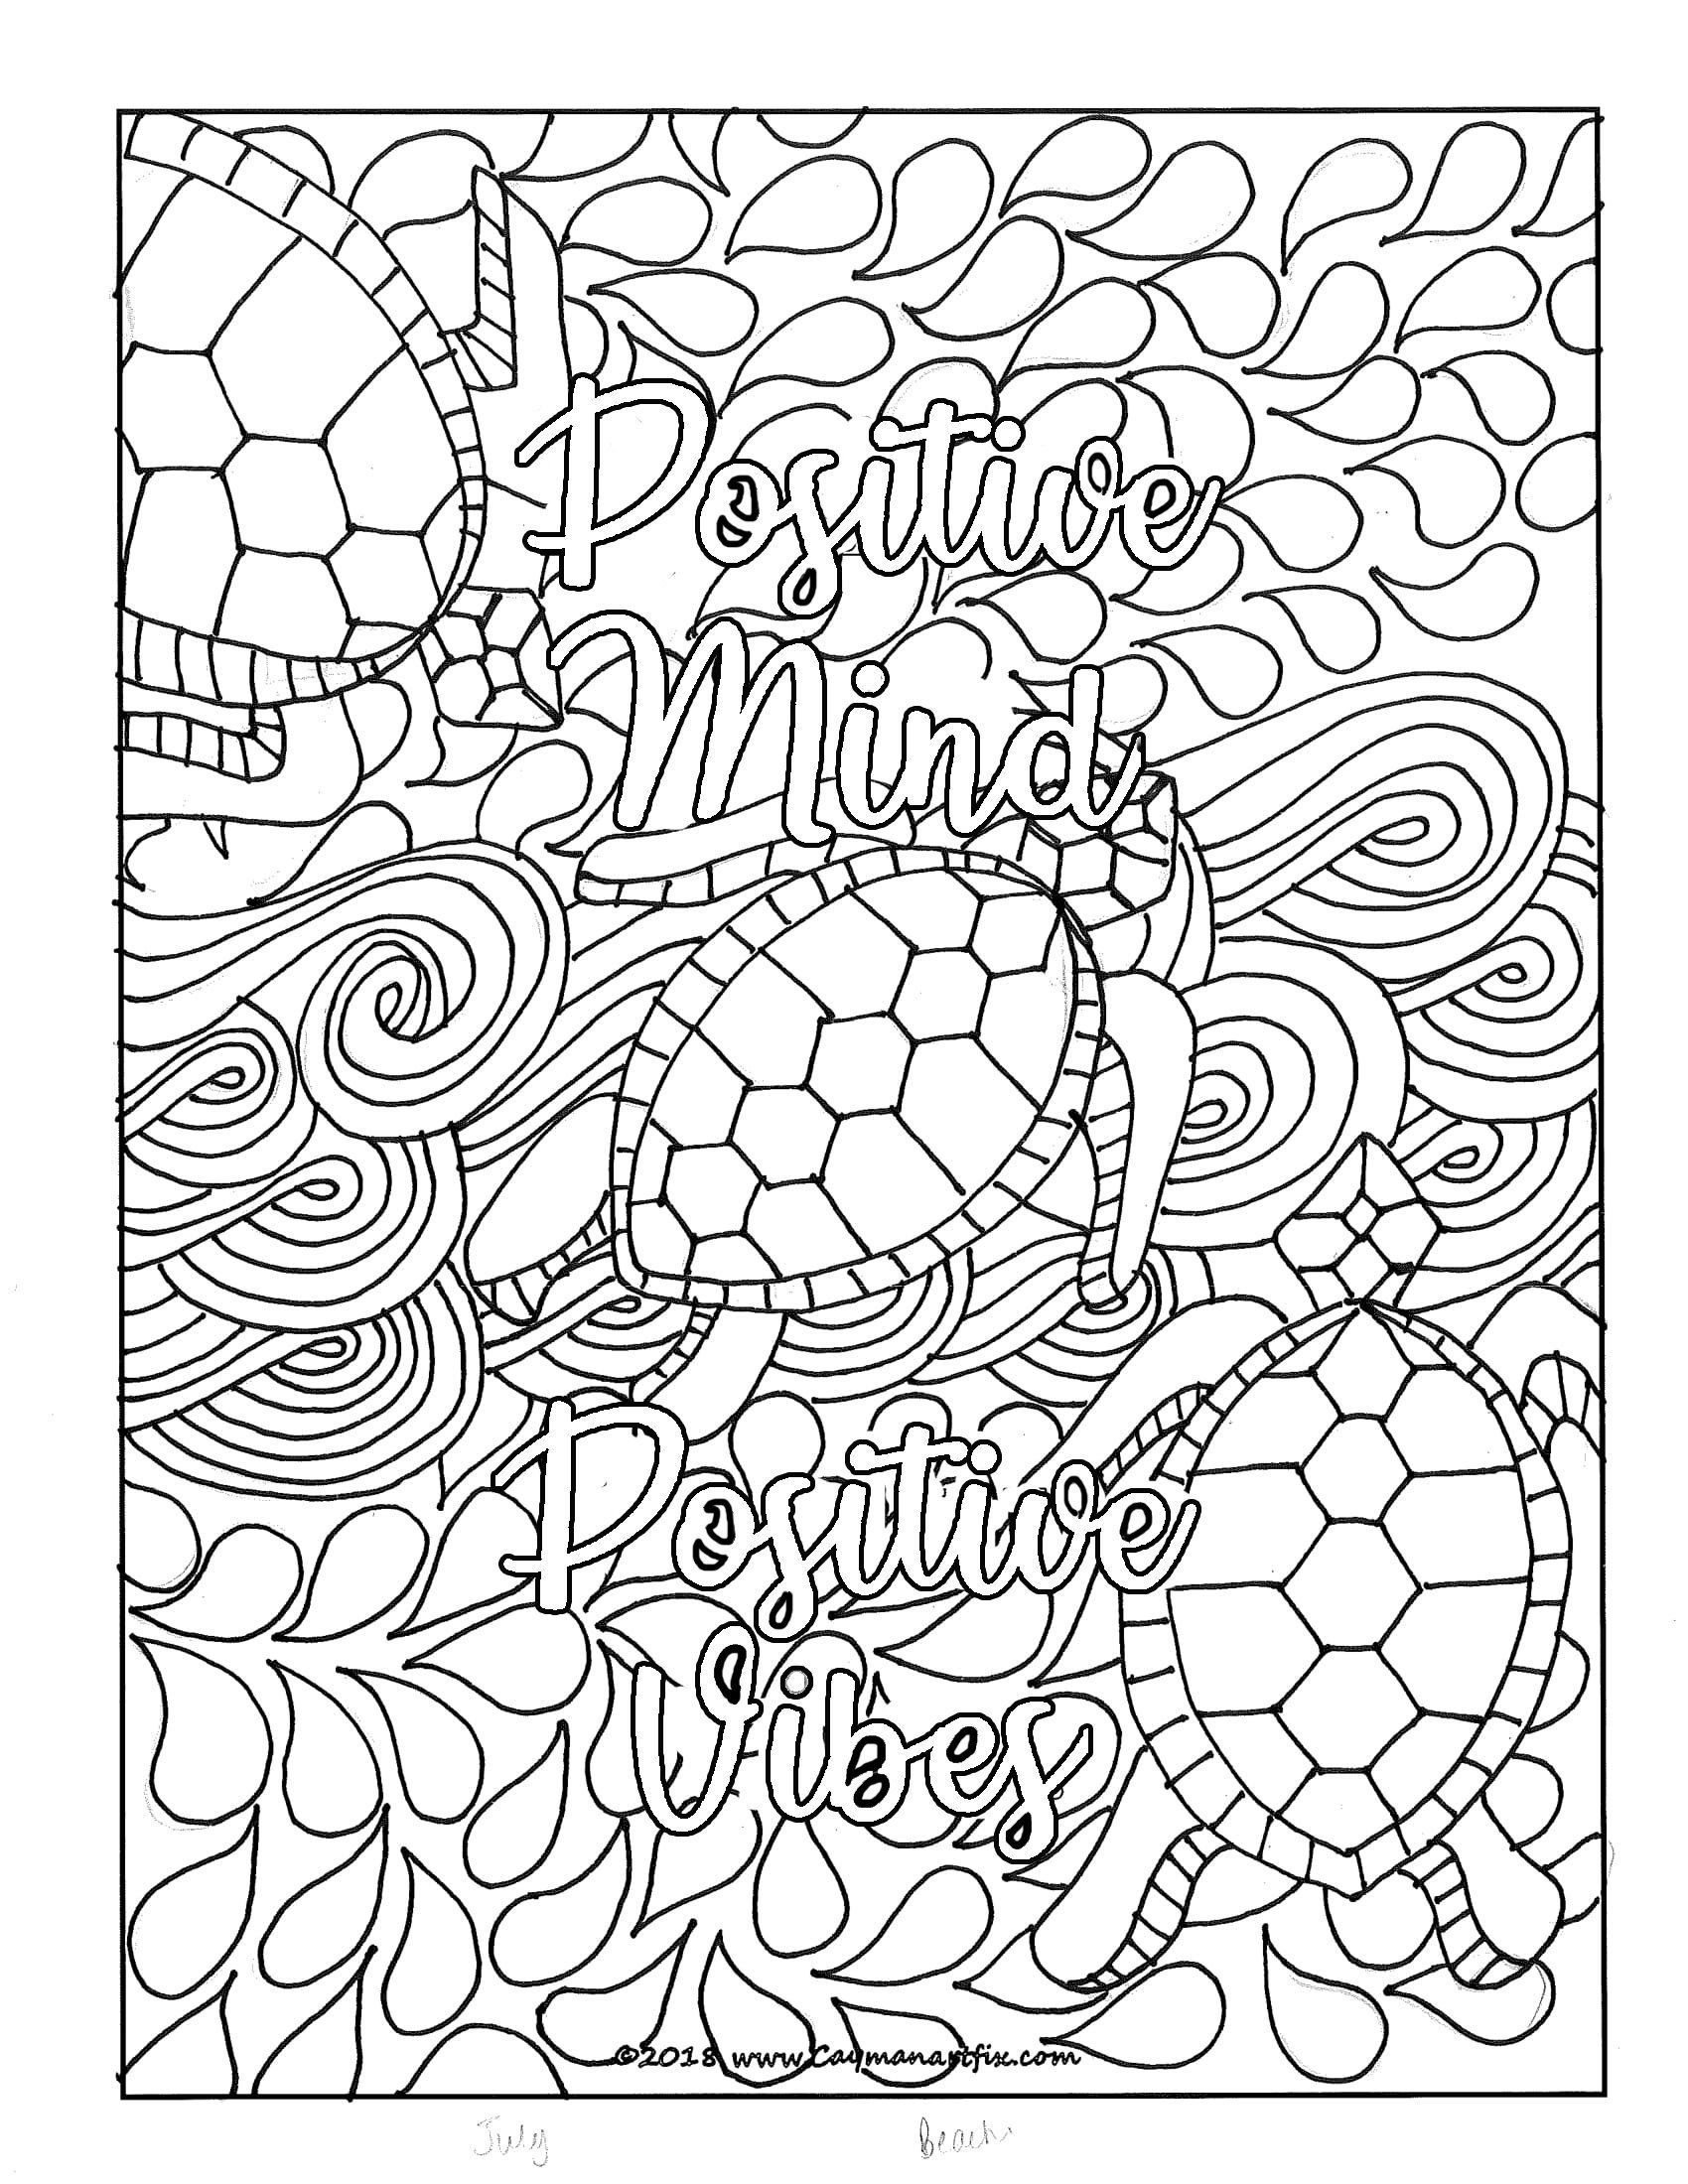 Positive Mind Positive Vibes Quote Coloring Page Etsy Manifestationlawofattractiondr Quote Coloring Pages Mindfulness Colouring Coloring Pages Inspirational